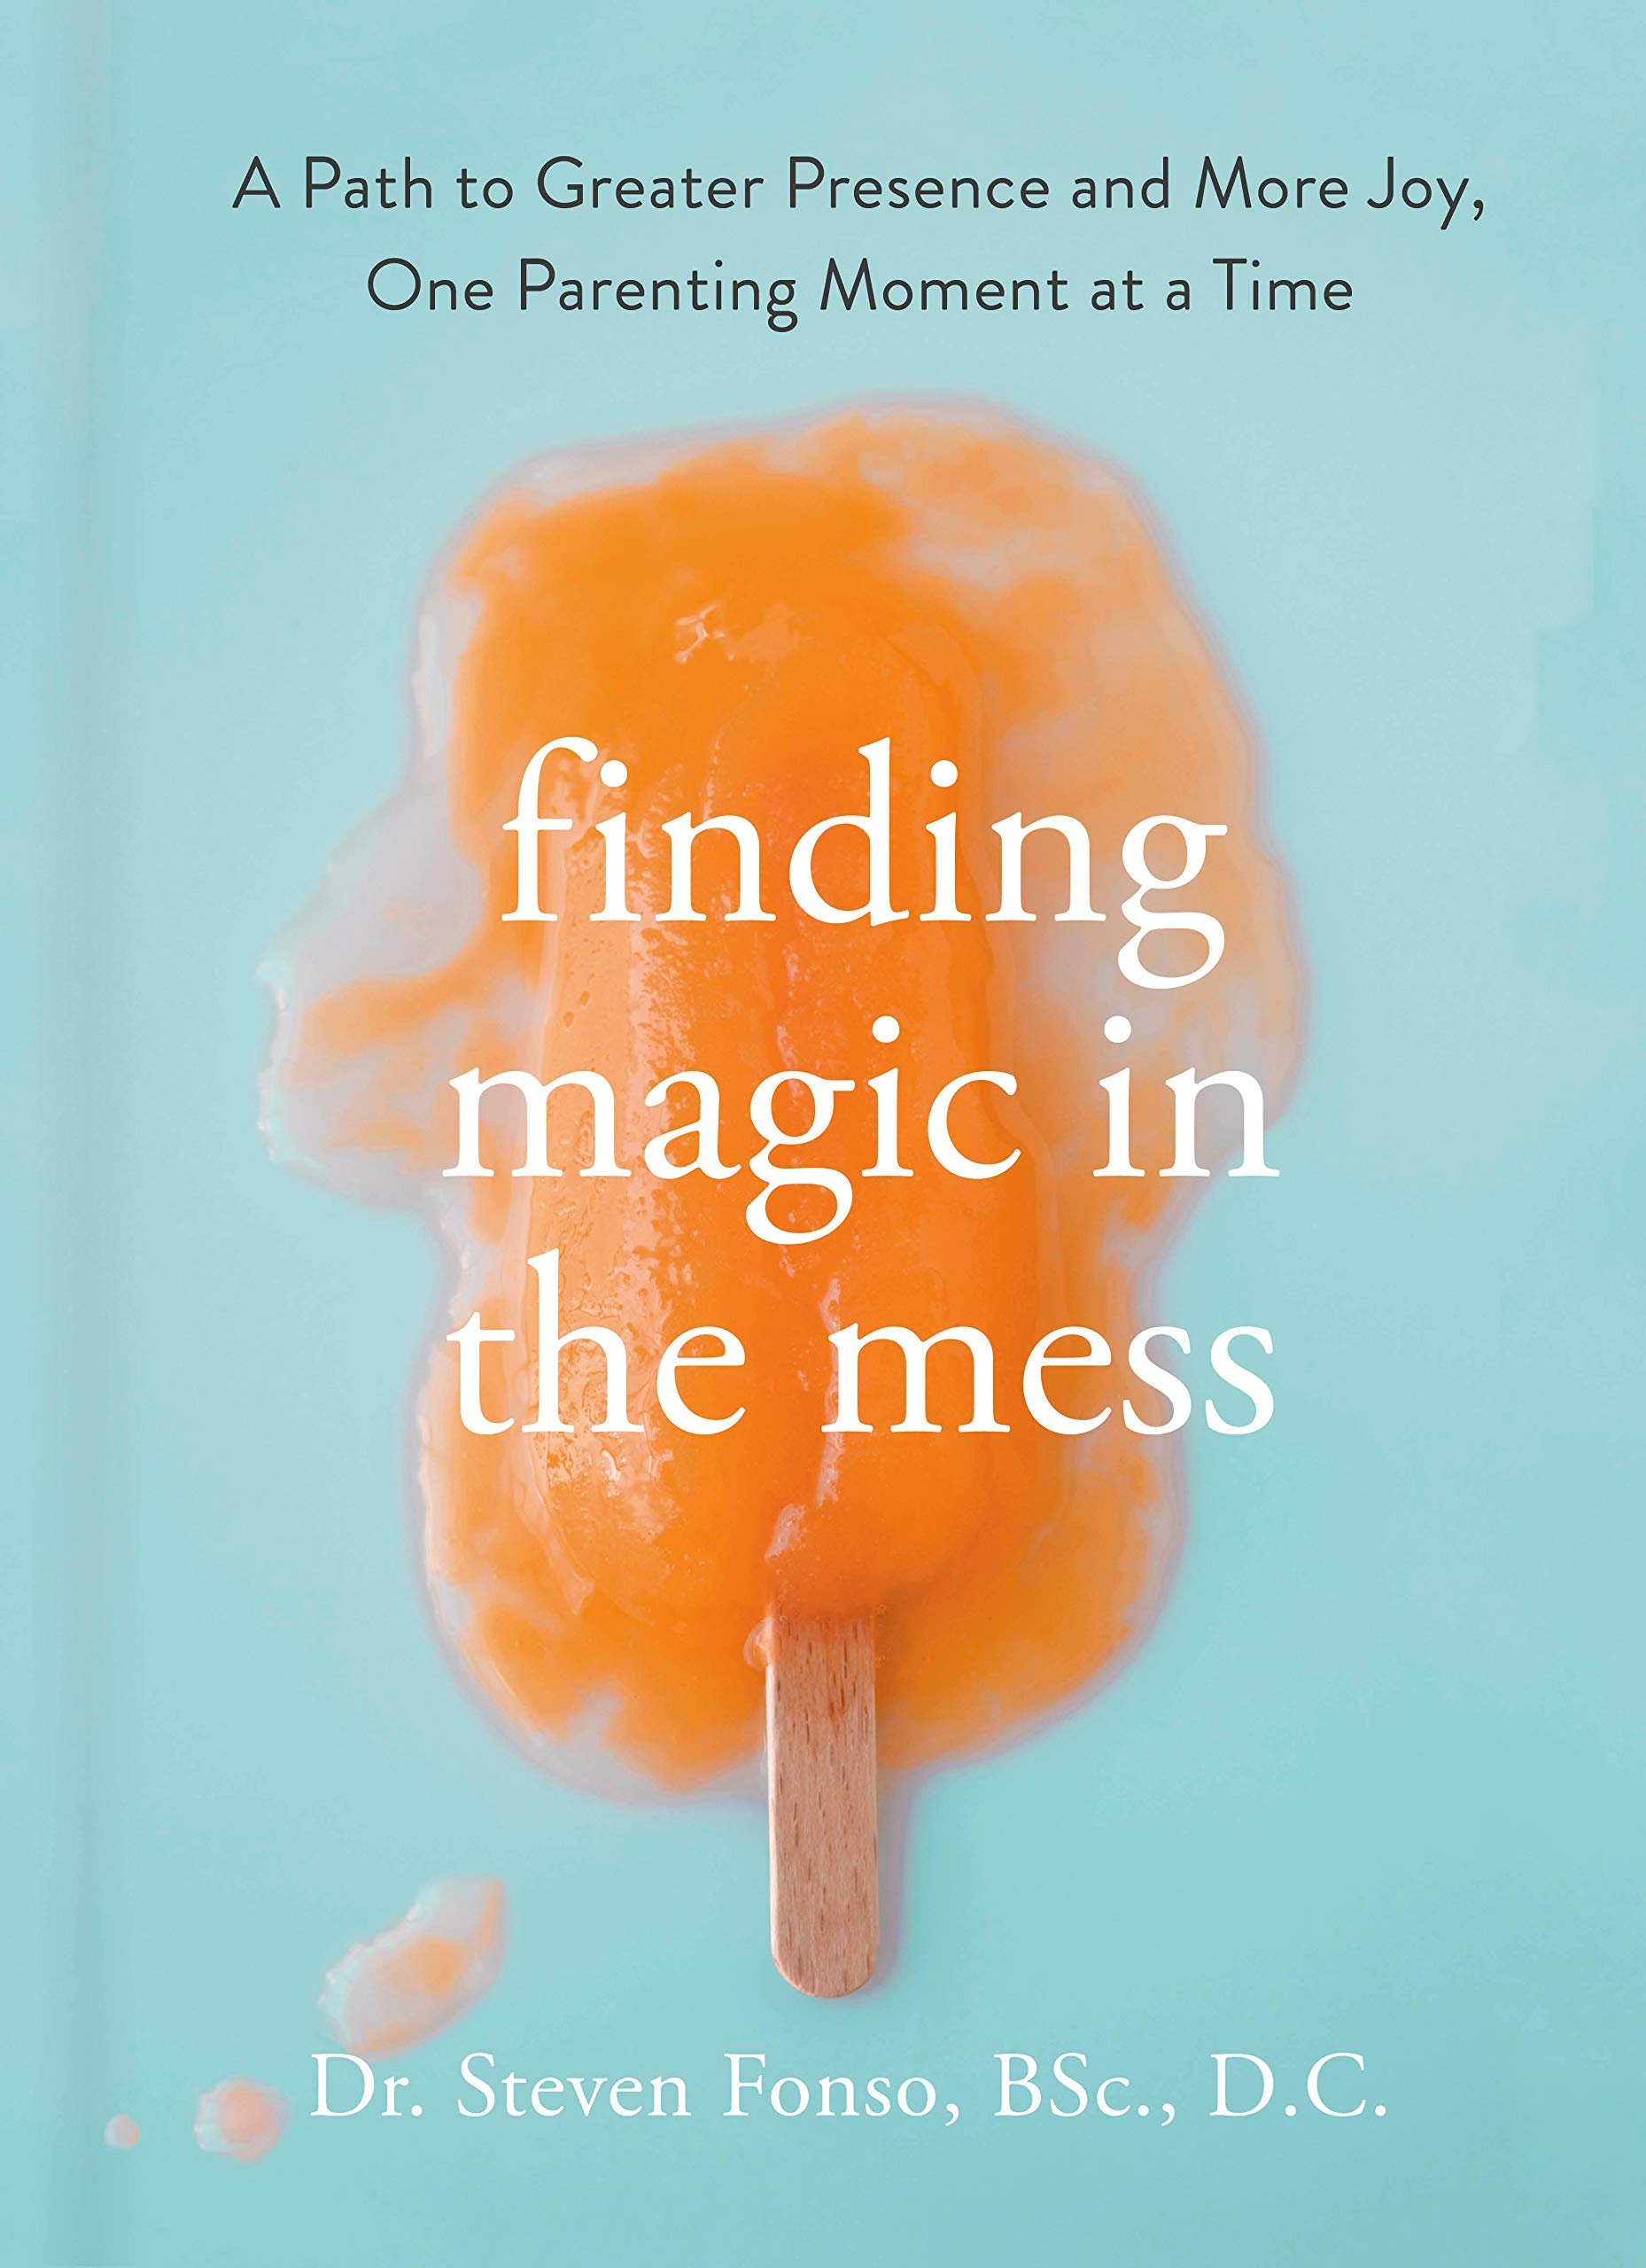 Finding Magic in the Mess by Dr. Steven Fonso